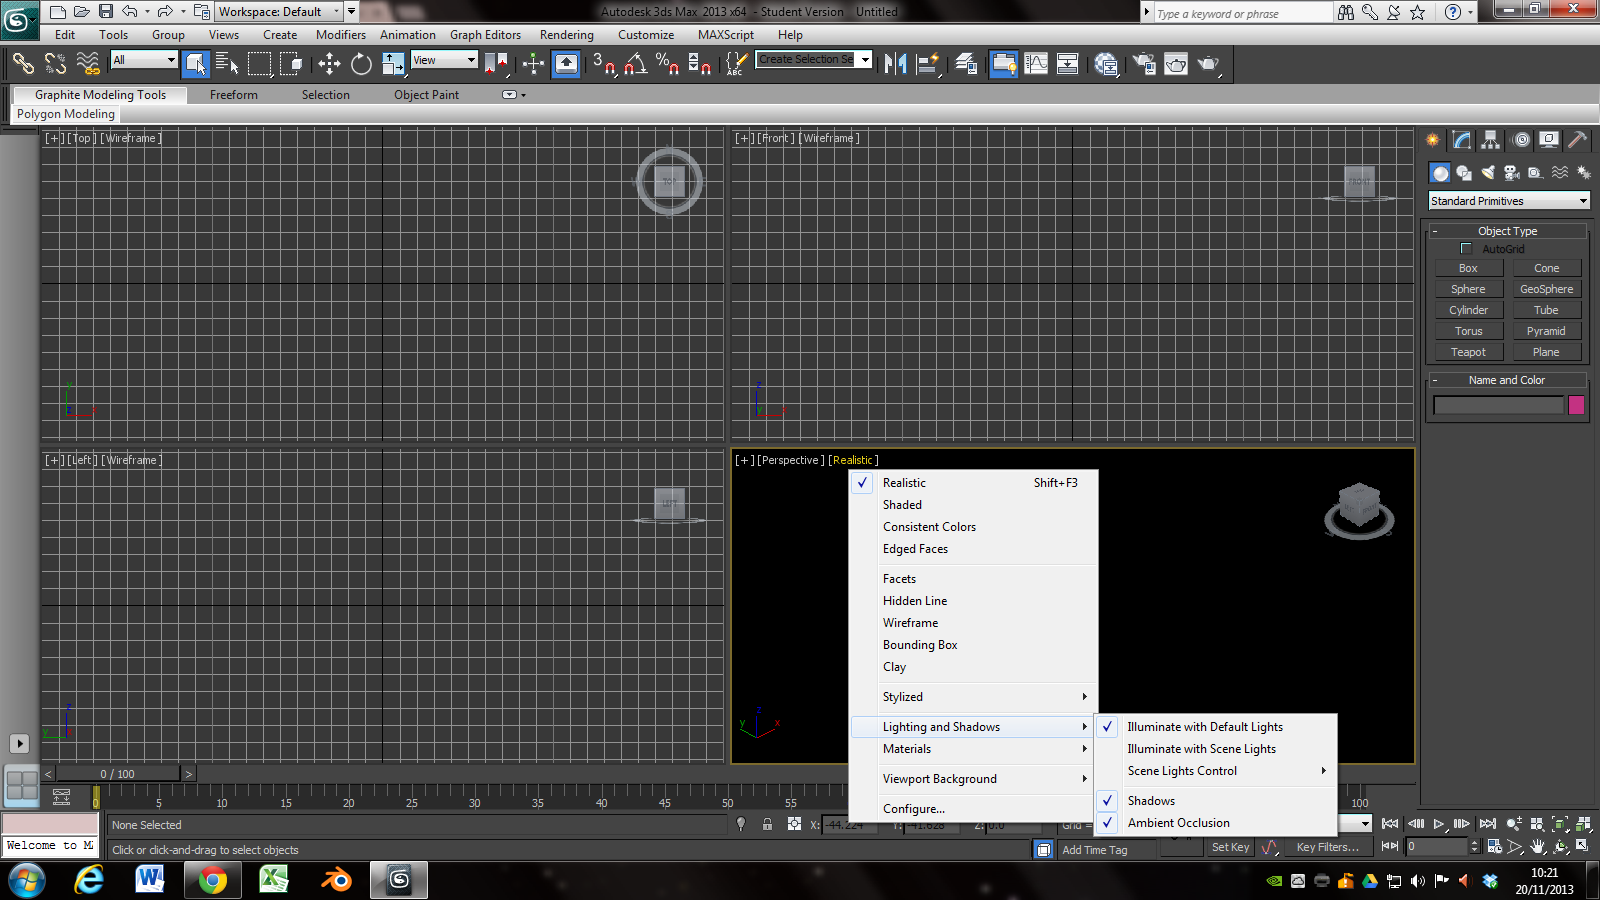 Background image 3ds max viewport - Background Image 3ds Max Viewport 17